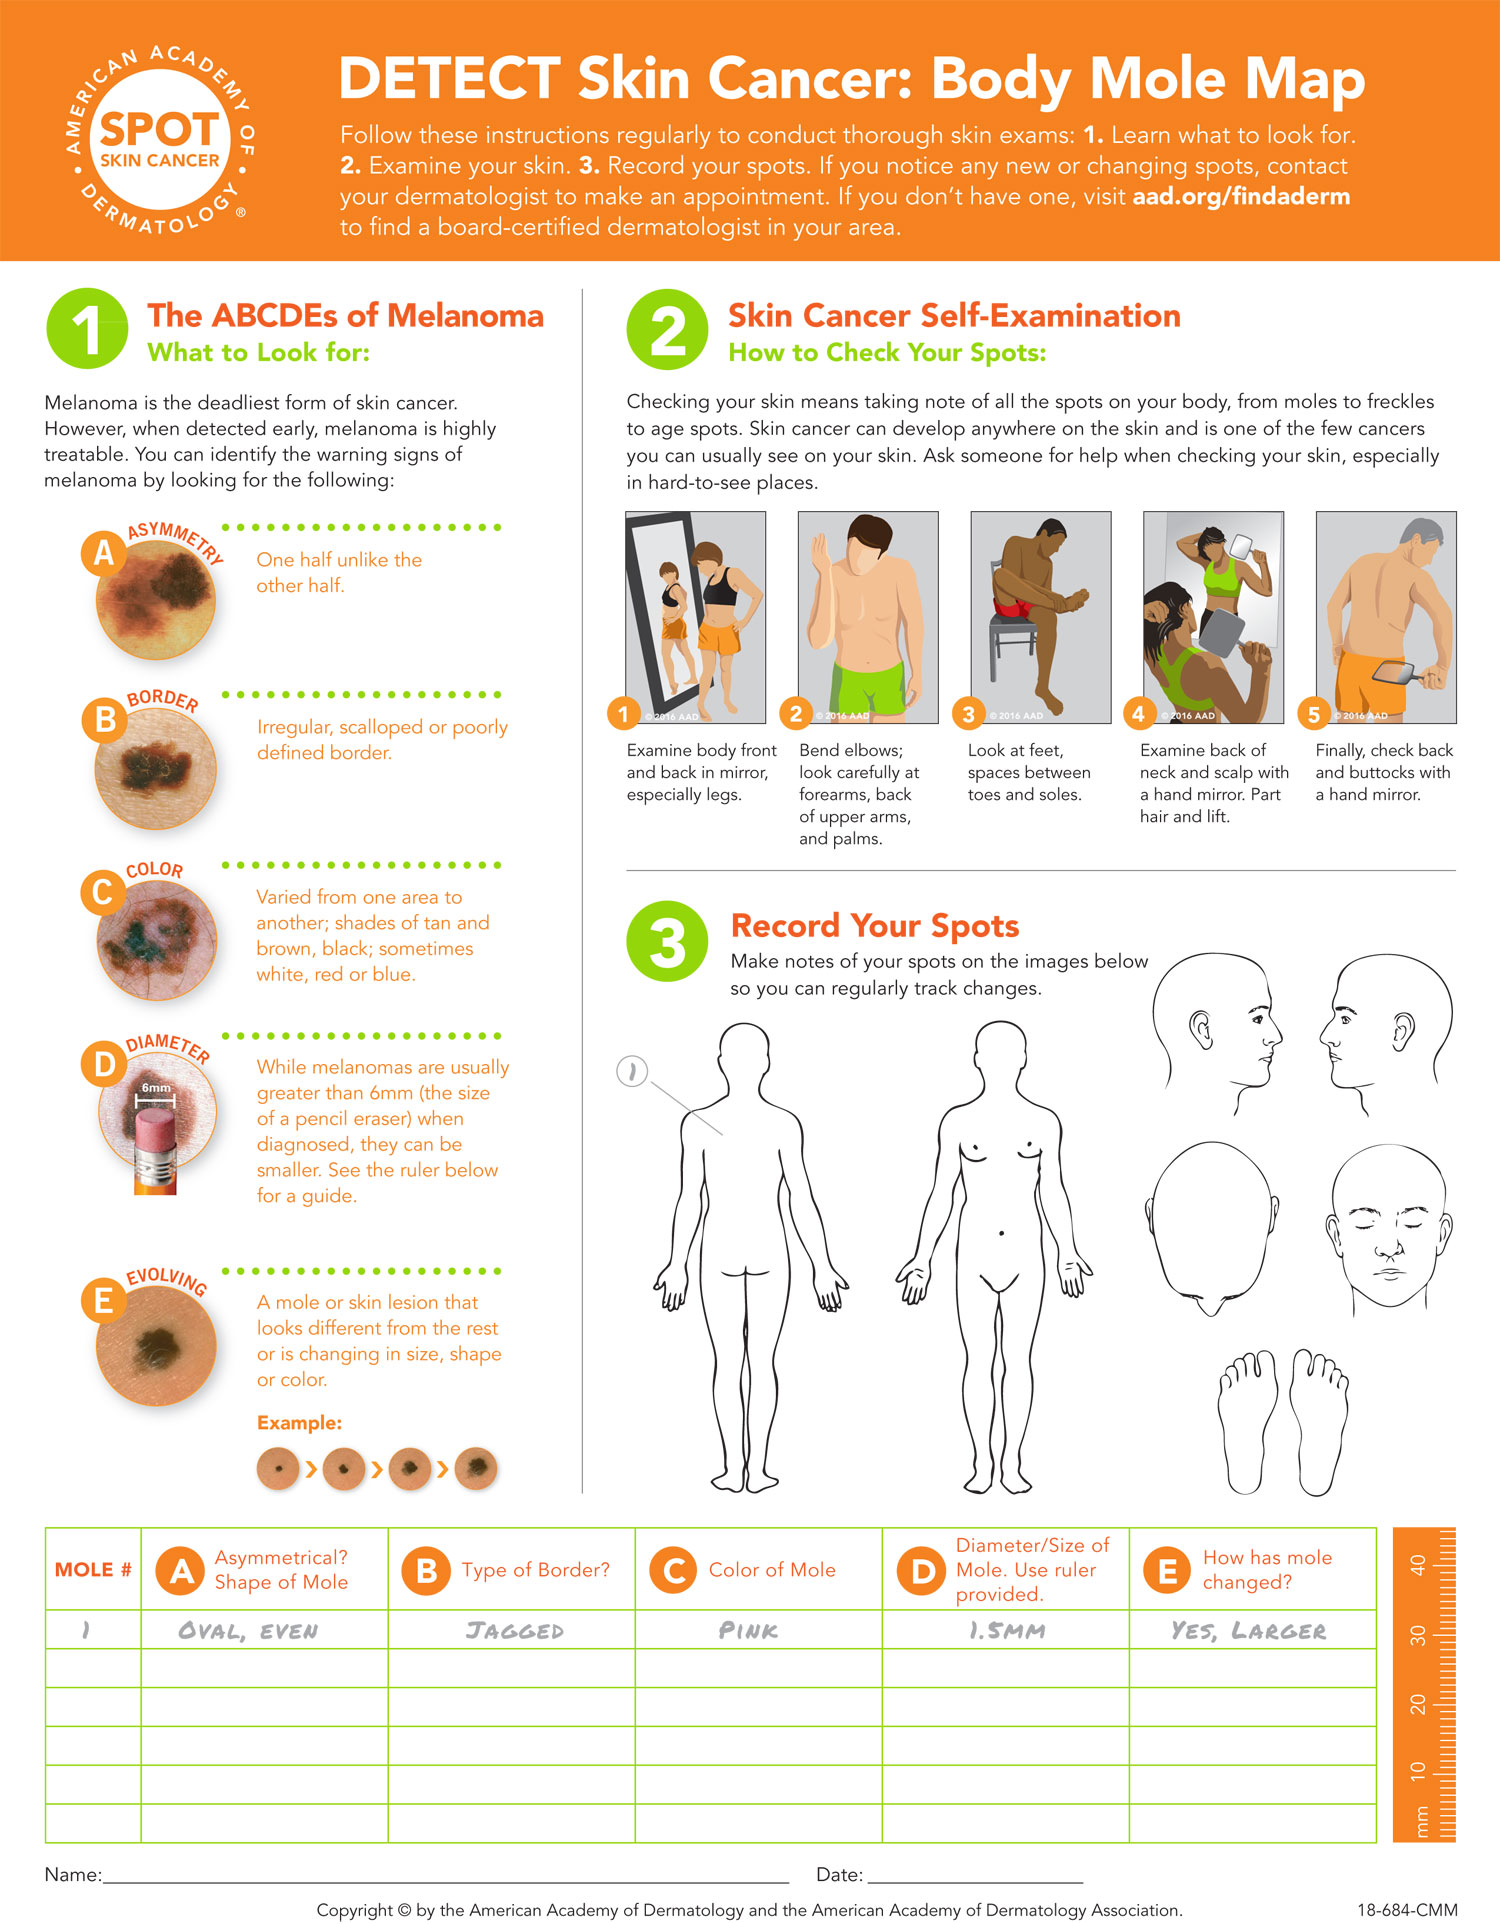 American Academy of Dermatology offers   additional resources to help you detect skin cancer   including a printable version of this Body Mole Map.